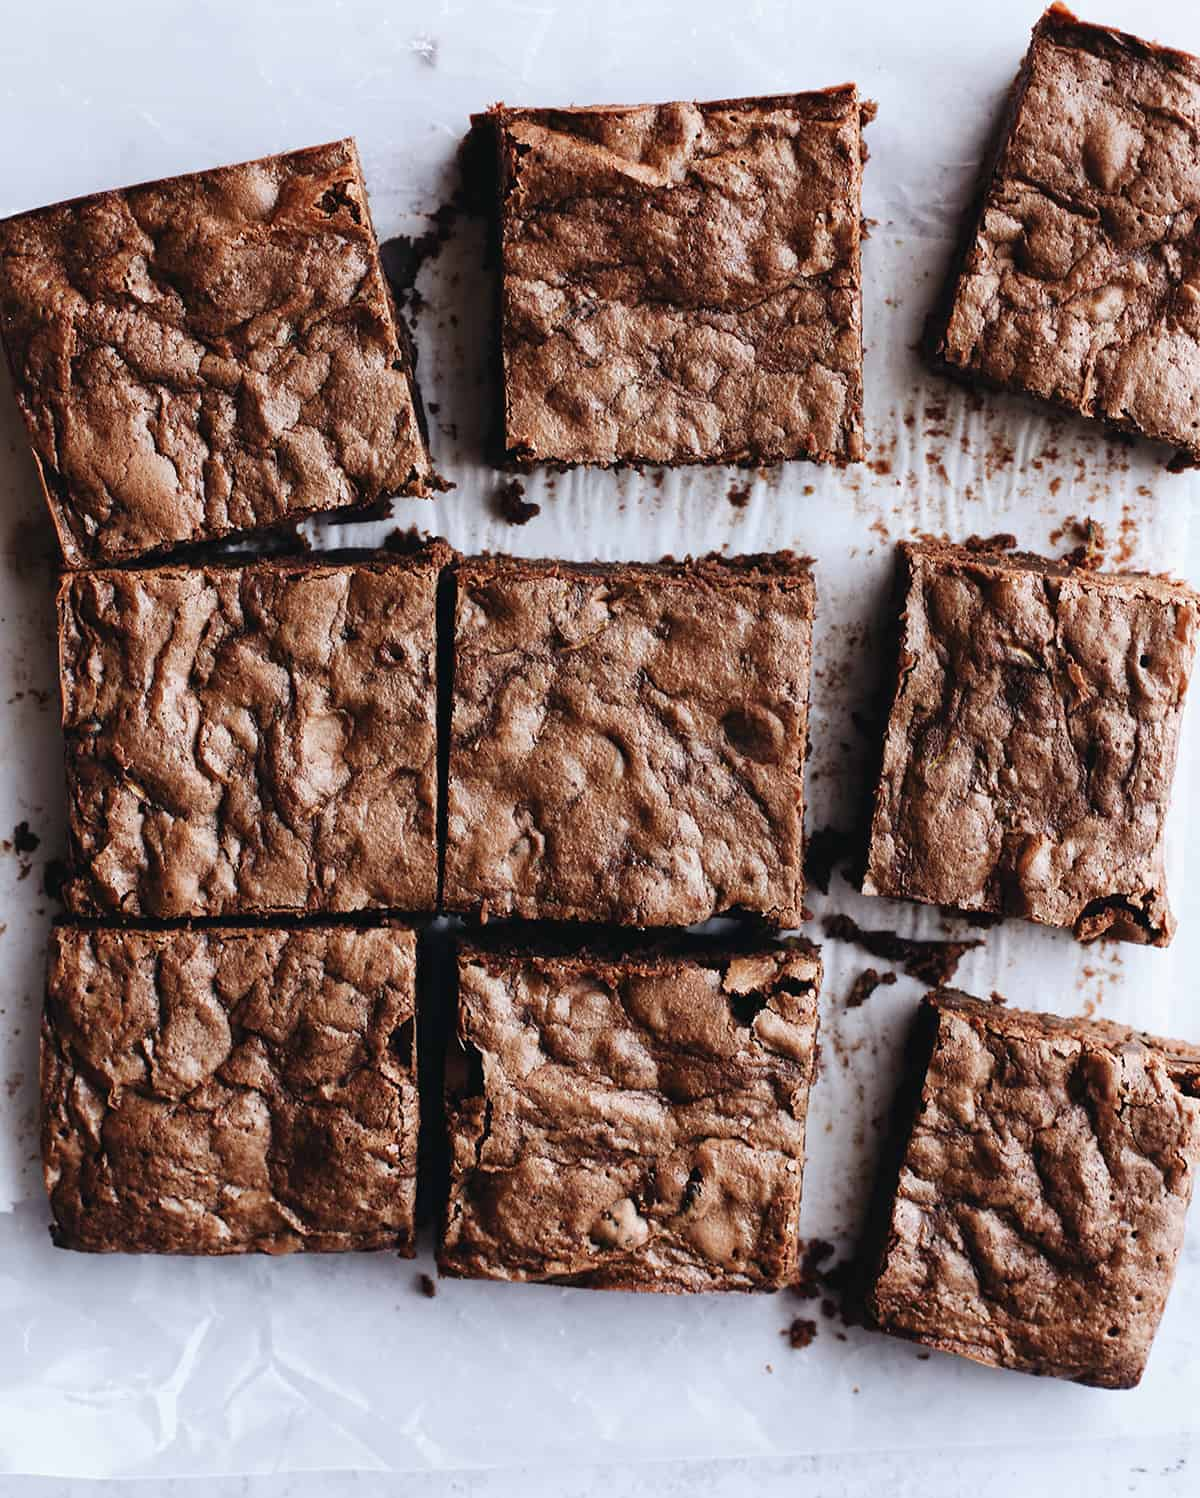 9 Chocolate Zucchini Brownies cut into squares